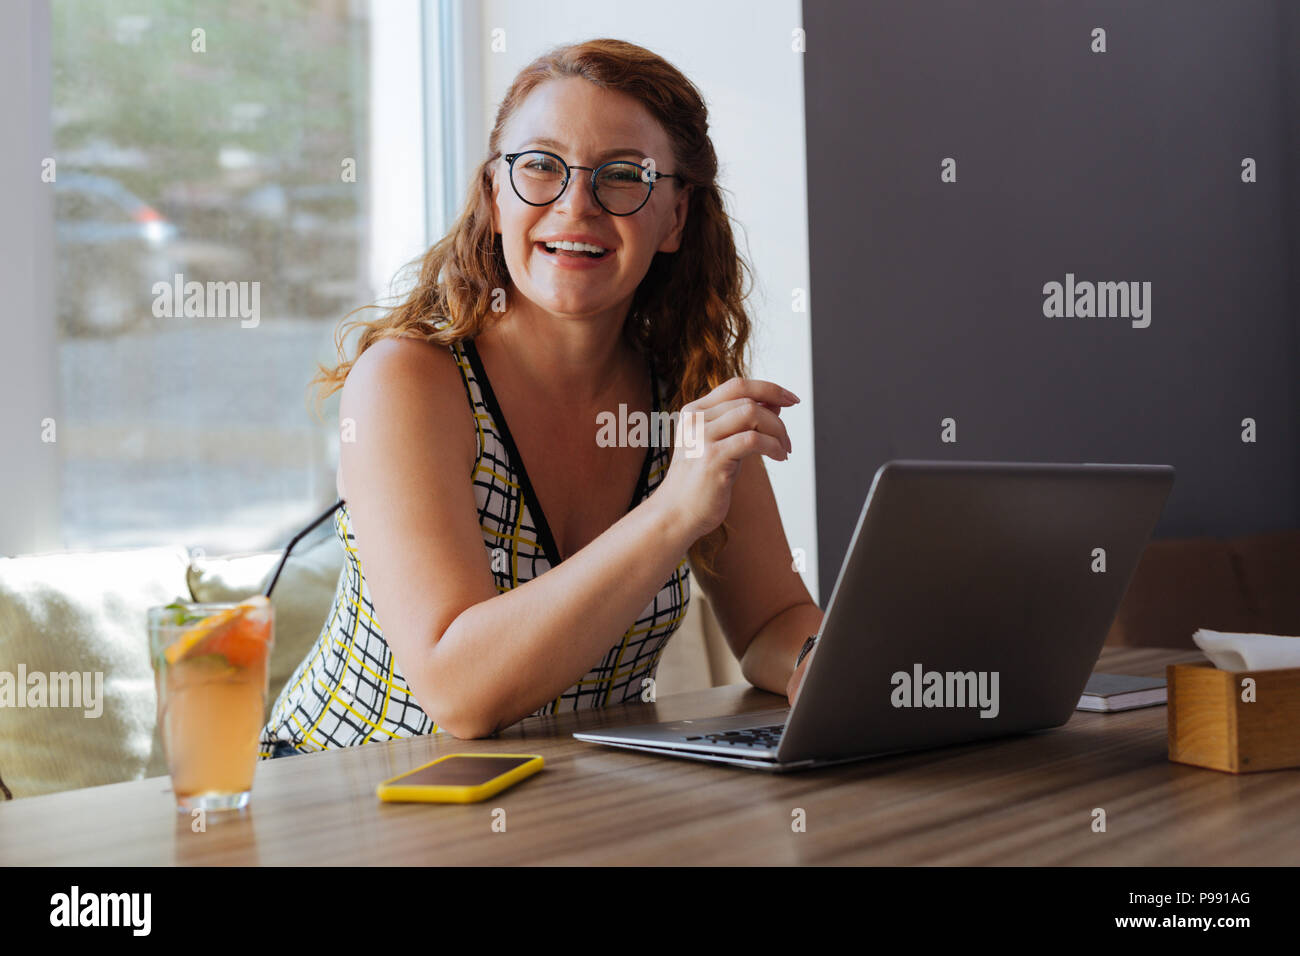 Dark-haired remote worker using her laptop - Stock Image